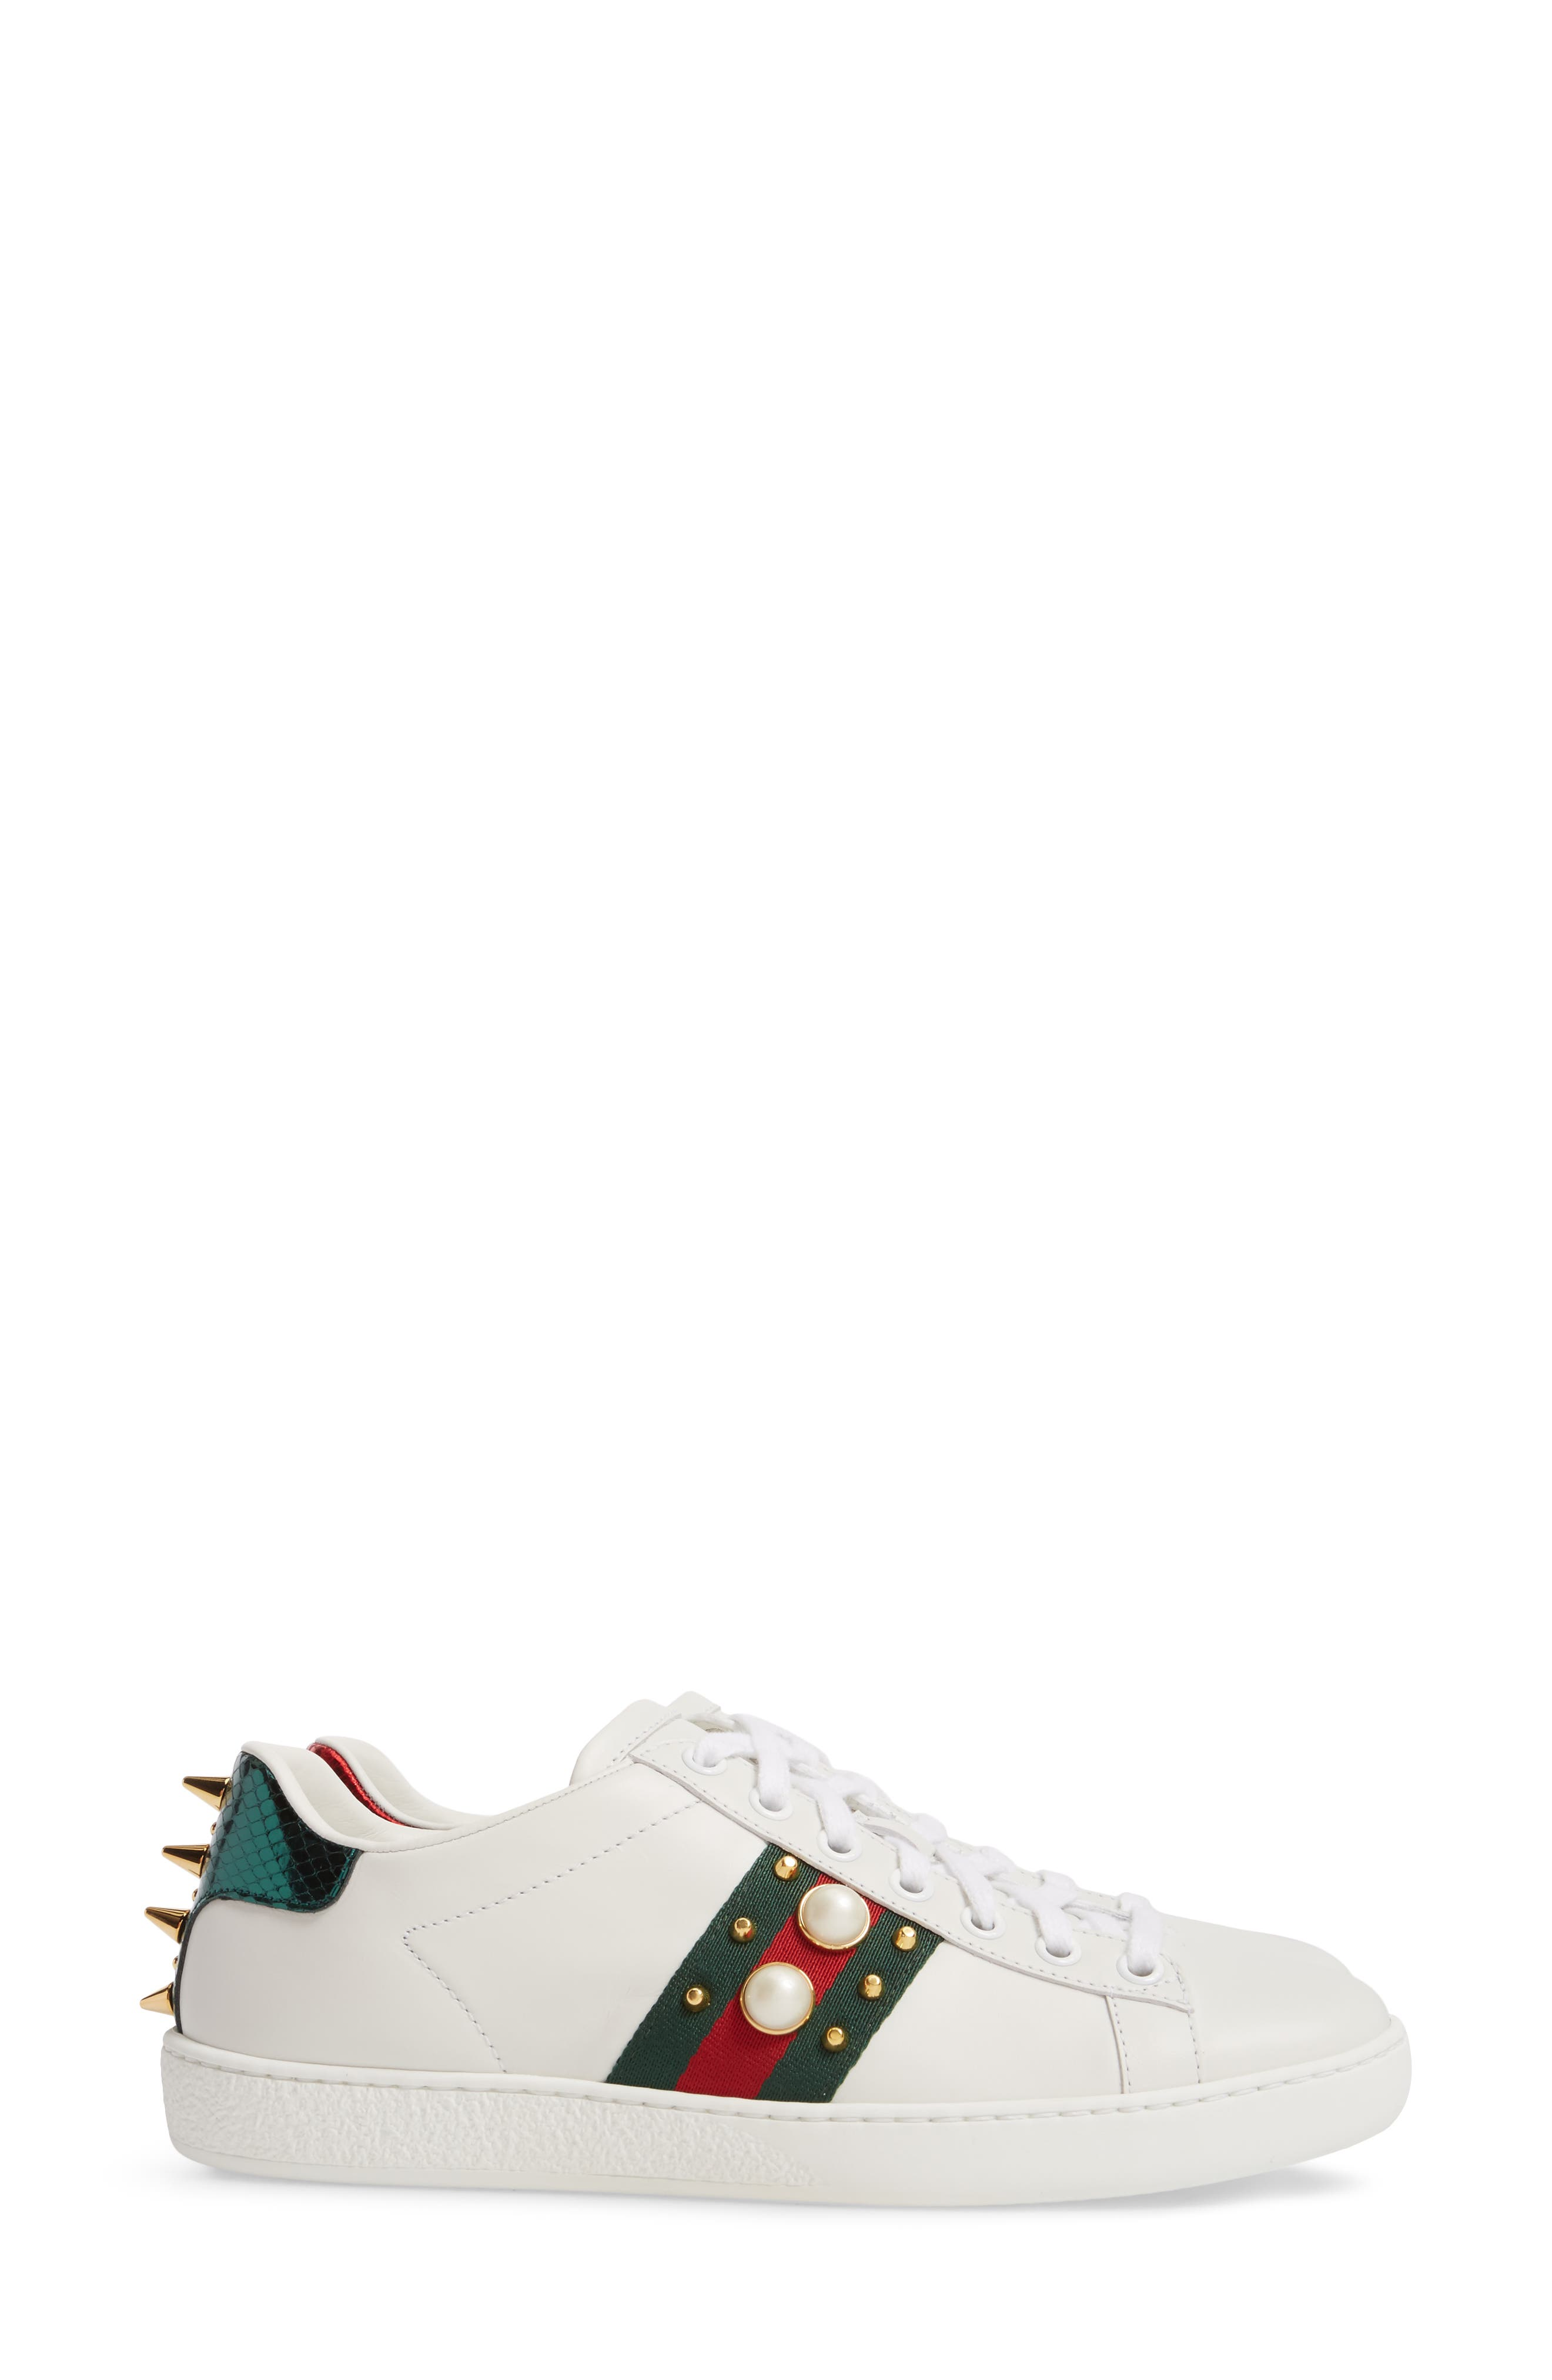 'New Ace' Low Top Sneaker,                             Alternate thumbnail 3, color,                             WHITE/ RED